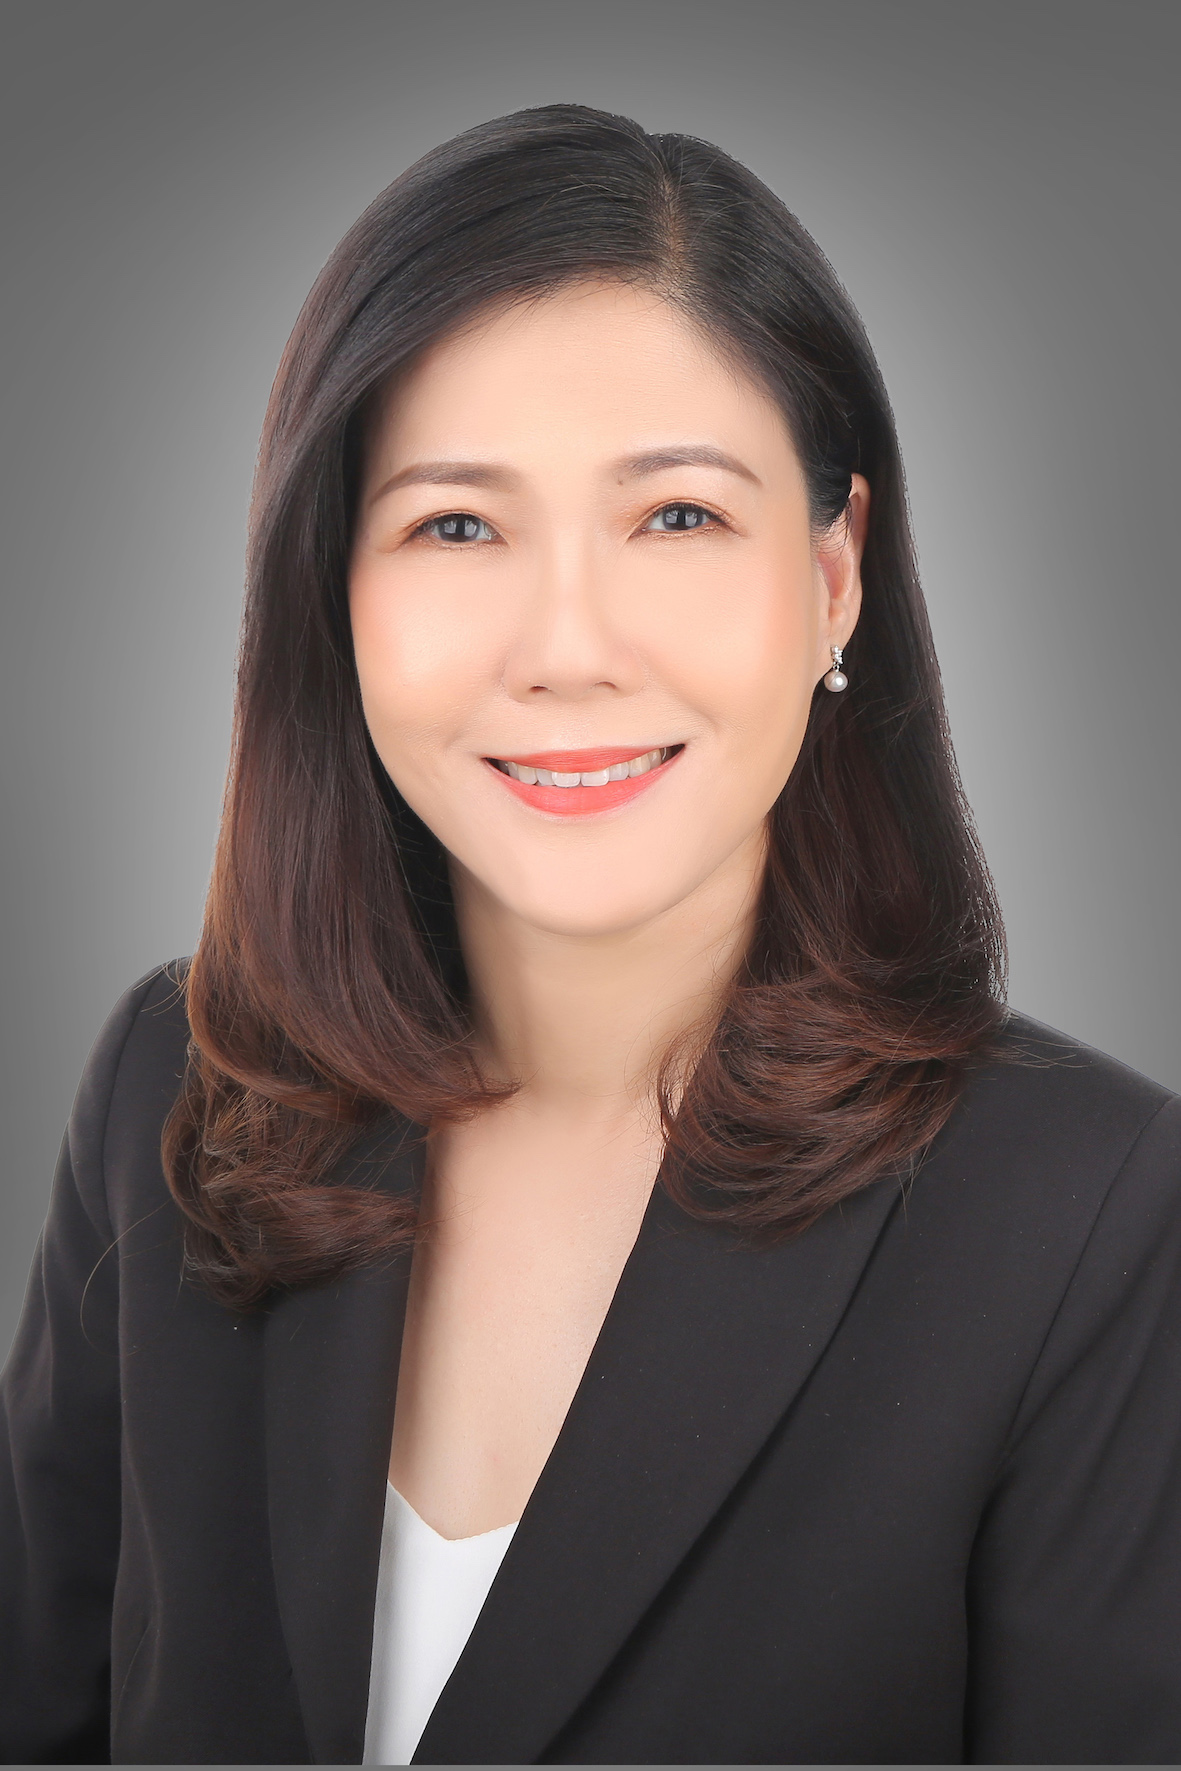 Brenda Ong is the head of the logistics and industrial business for Cushman & Wakefield (Photo: Cushman & Wakefield)